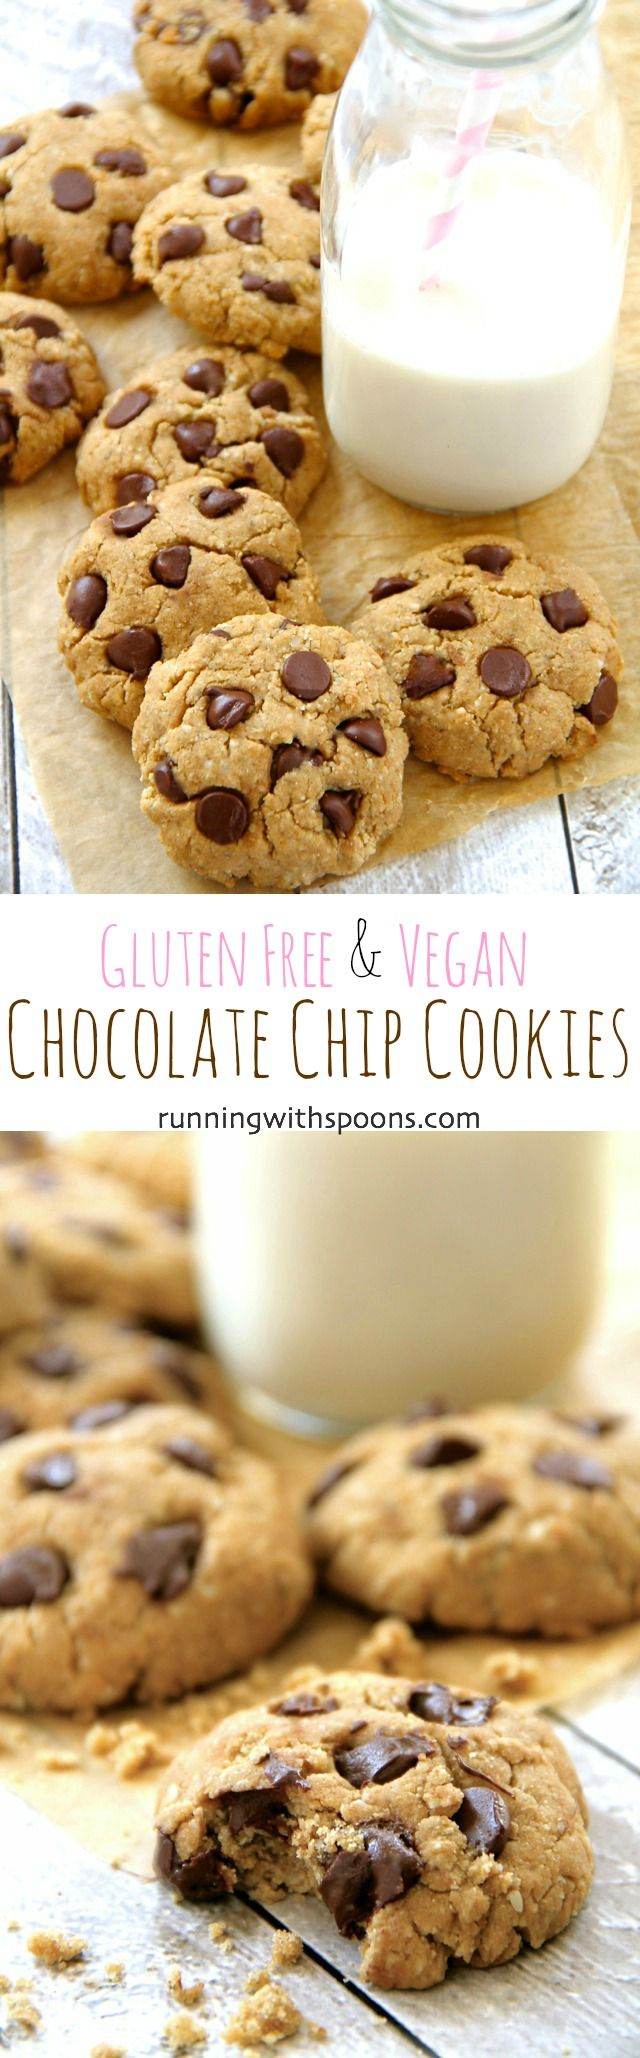 These delicious gluten free vegan chocolate chip cookies will please even gluten-eaters and non-vegans! Soft, chewy, and loaded with chocolate chips, they're a healthier cookie that everyone will love!